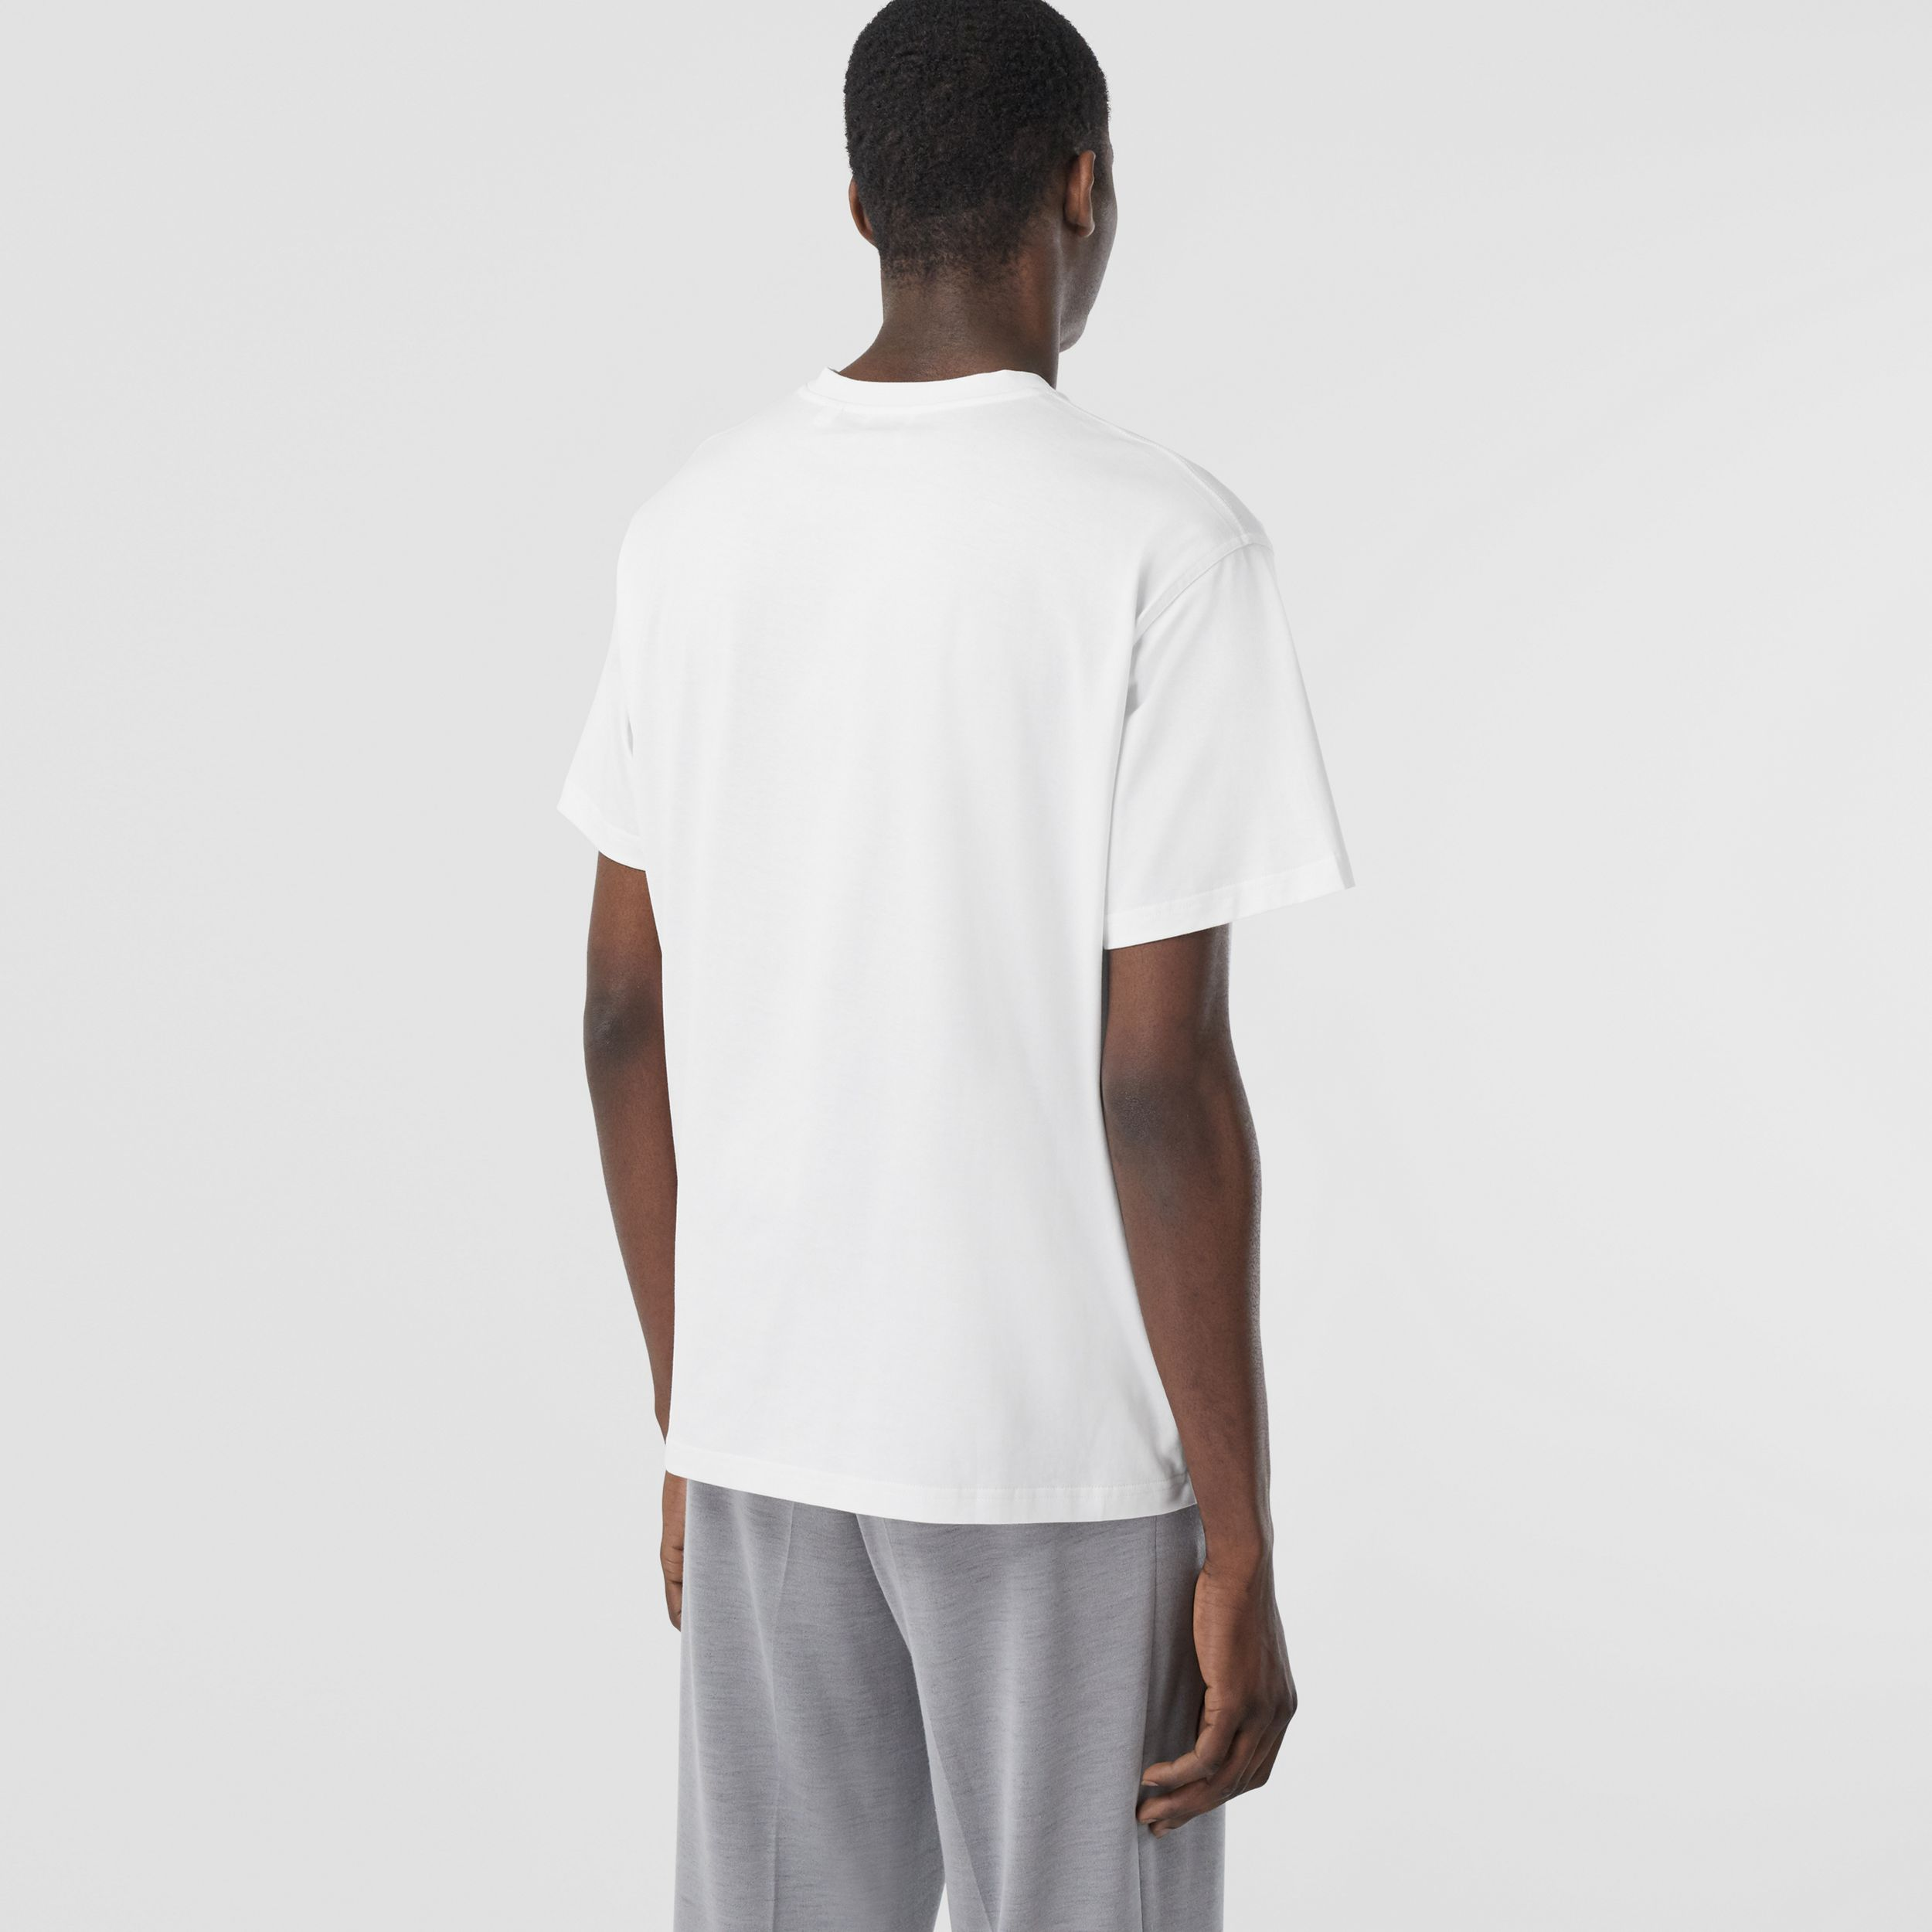 Swan and Logo Print Cotton Oversized T-shirt in Optic White - Men | Burberry - 3